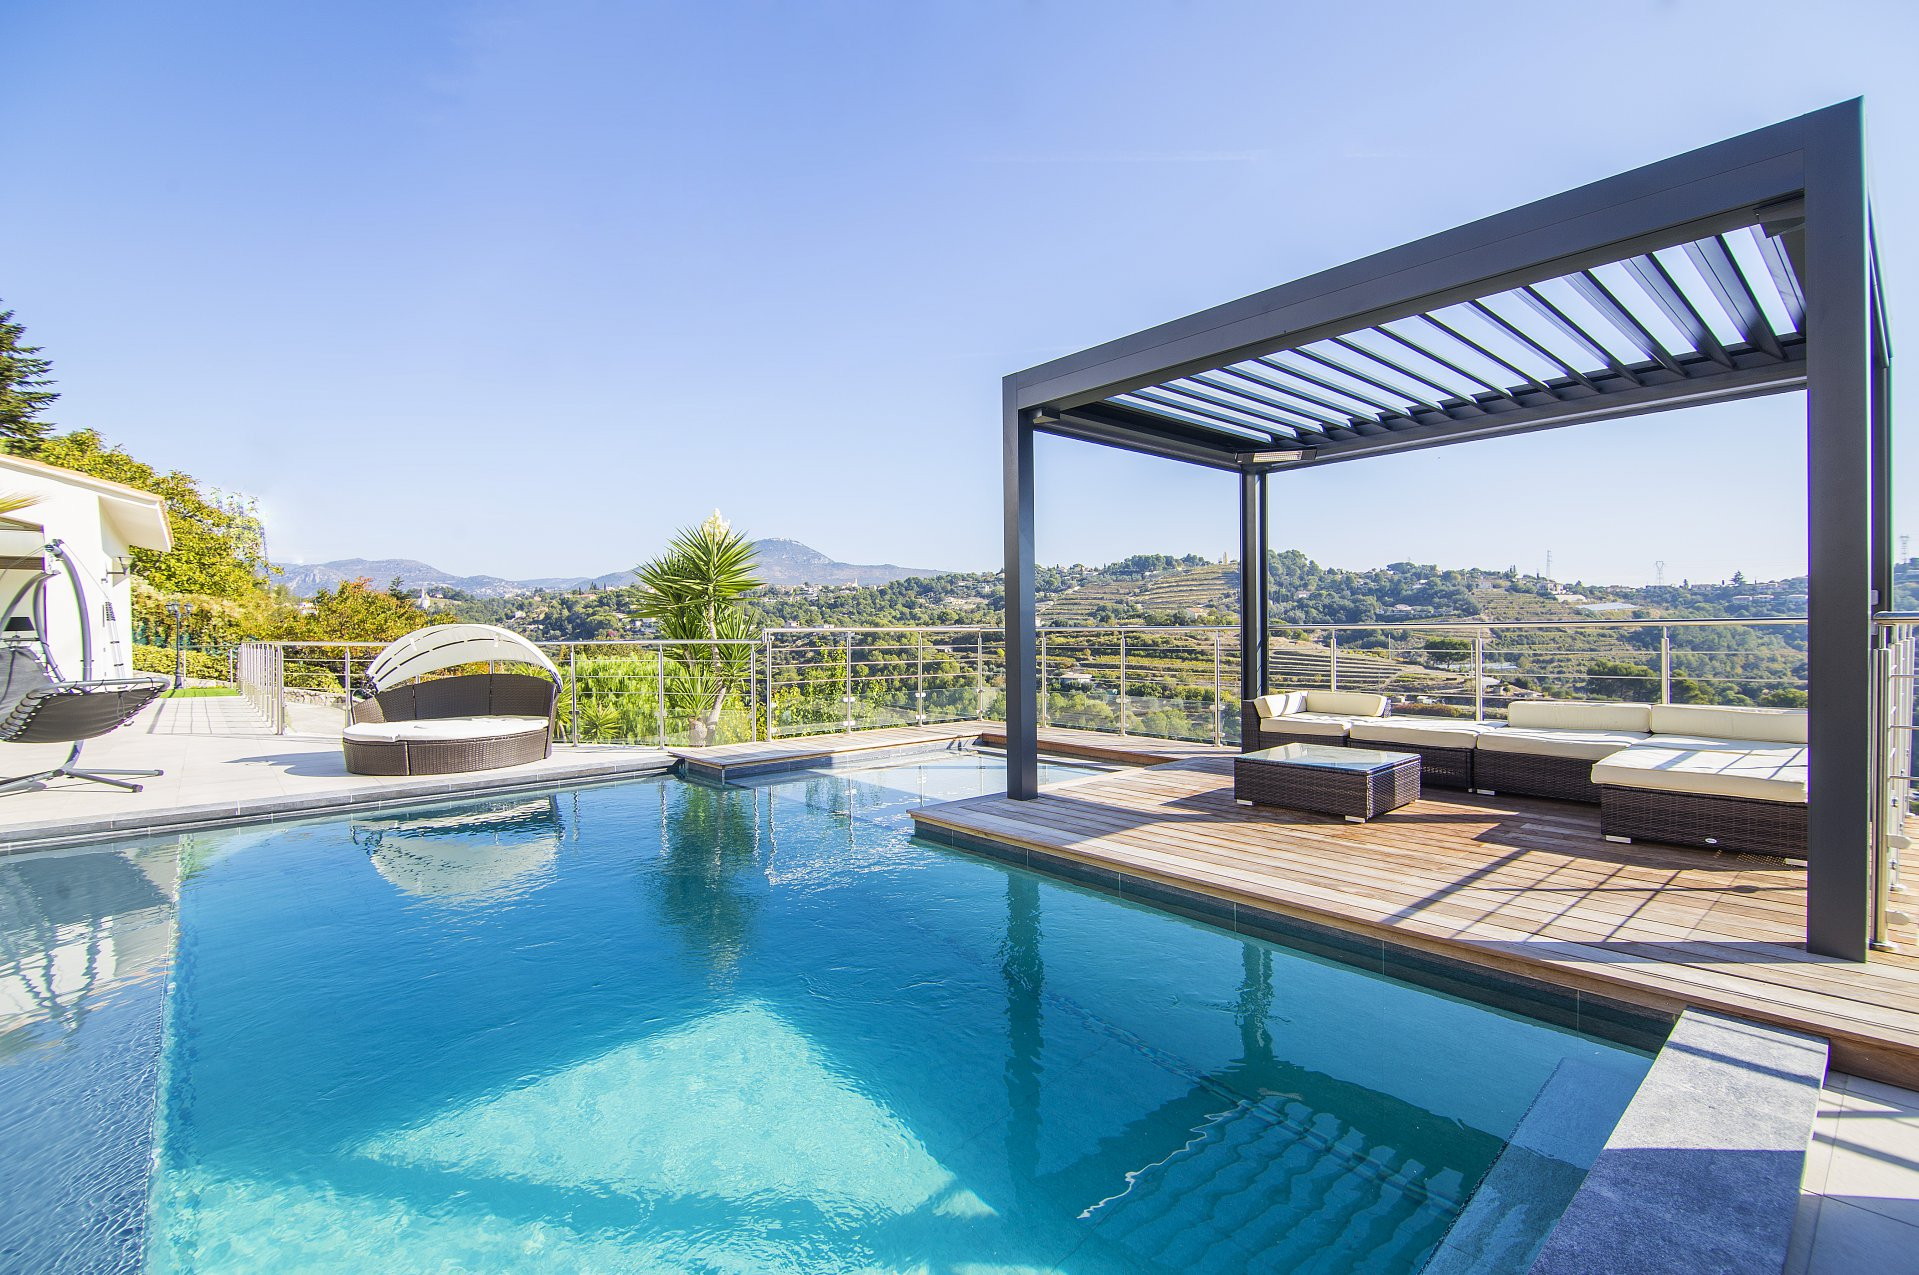 NICE WEST / SAINT ISIDORE - MODERN VILLA WITH SWIMMING POOL OVERFLOW